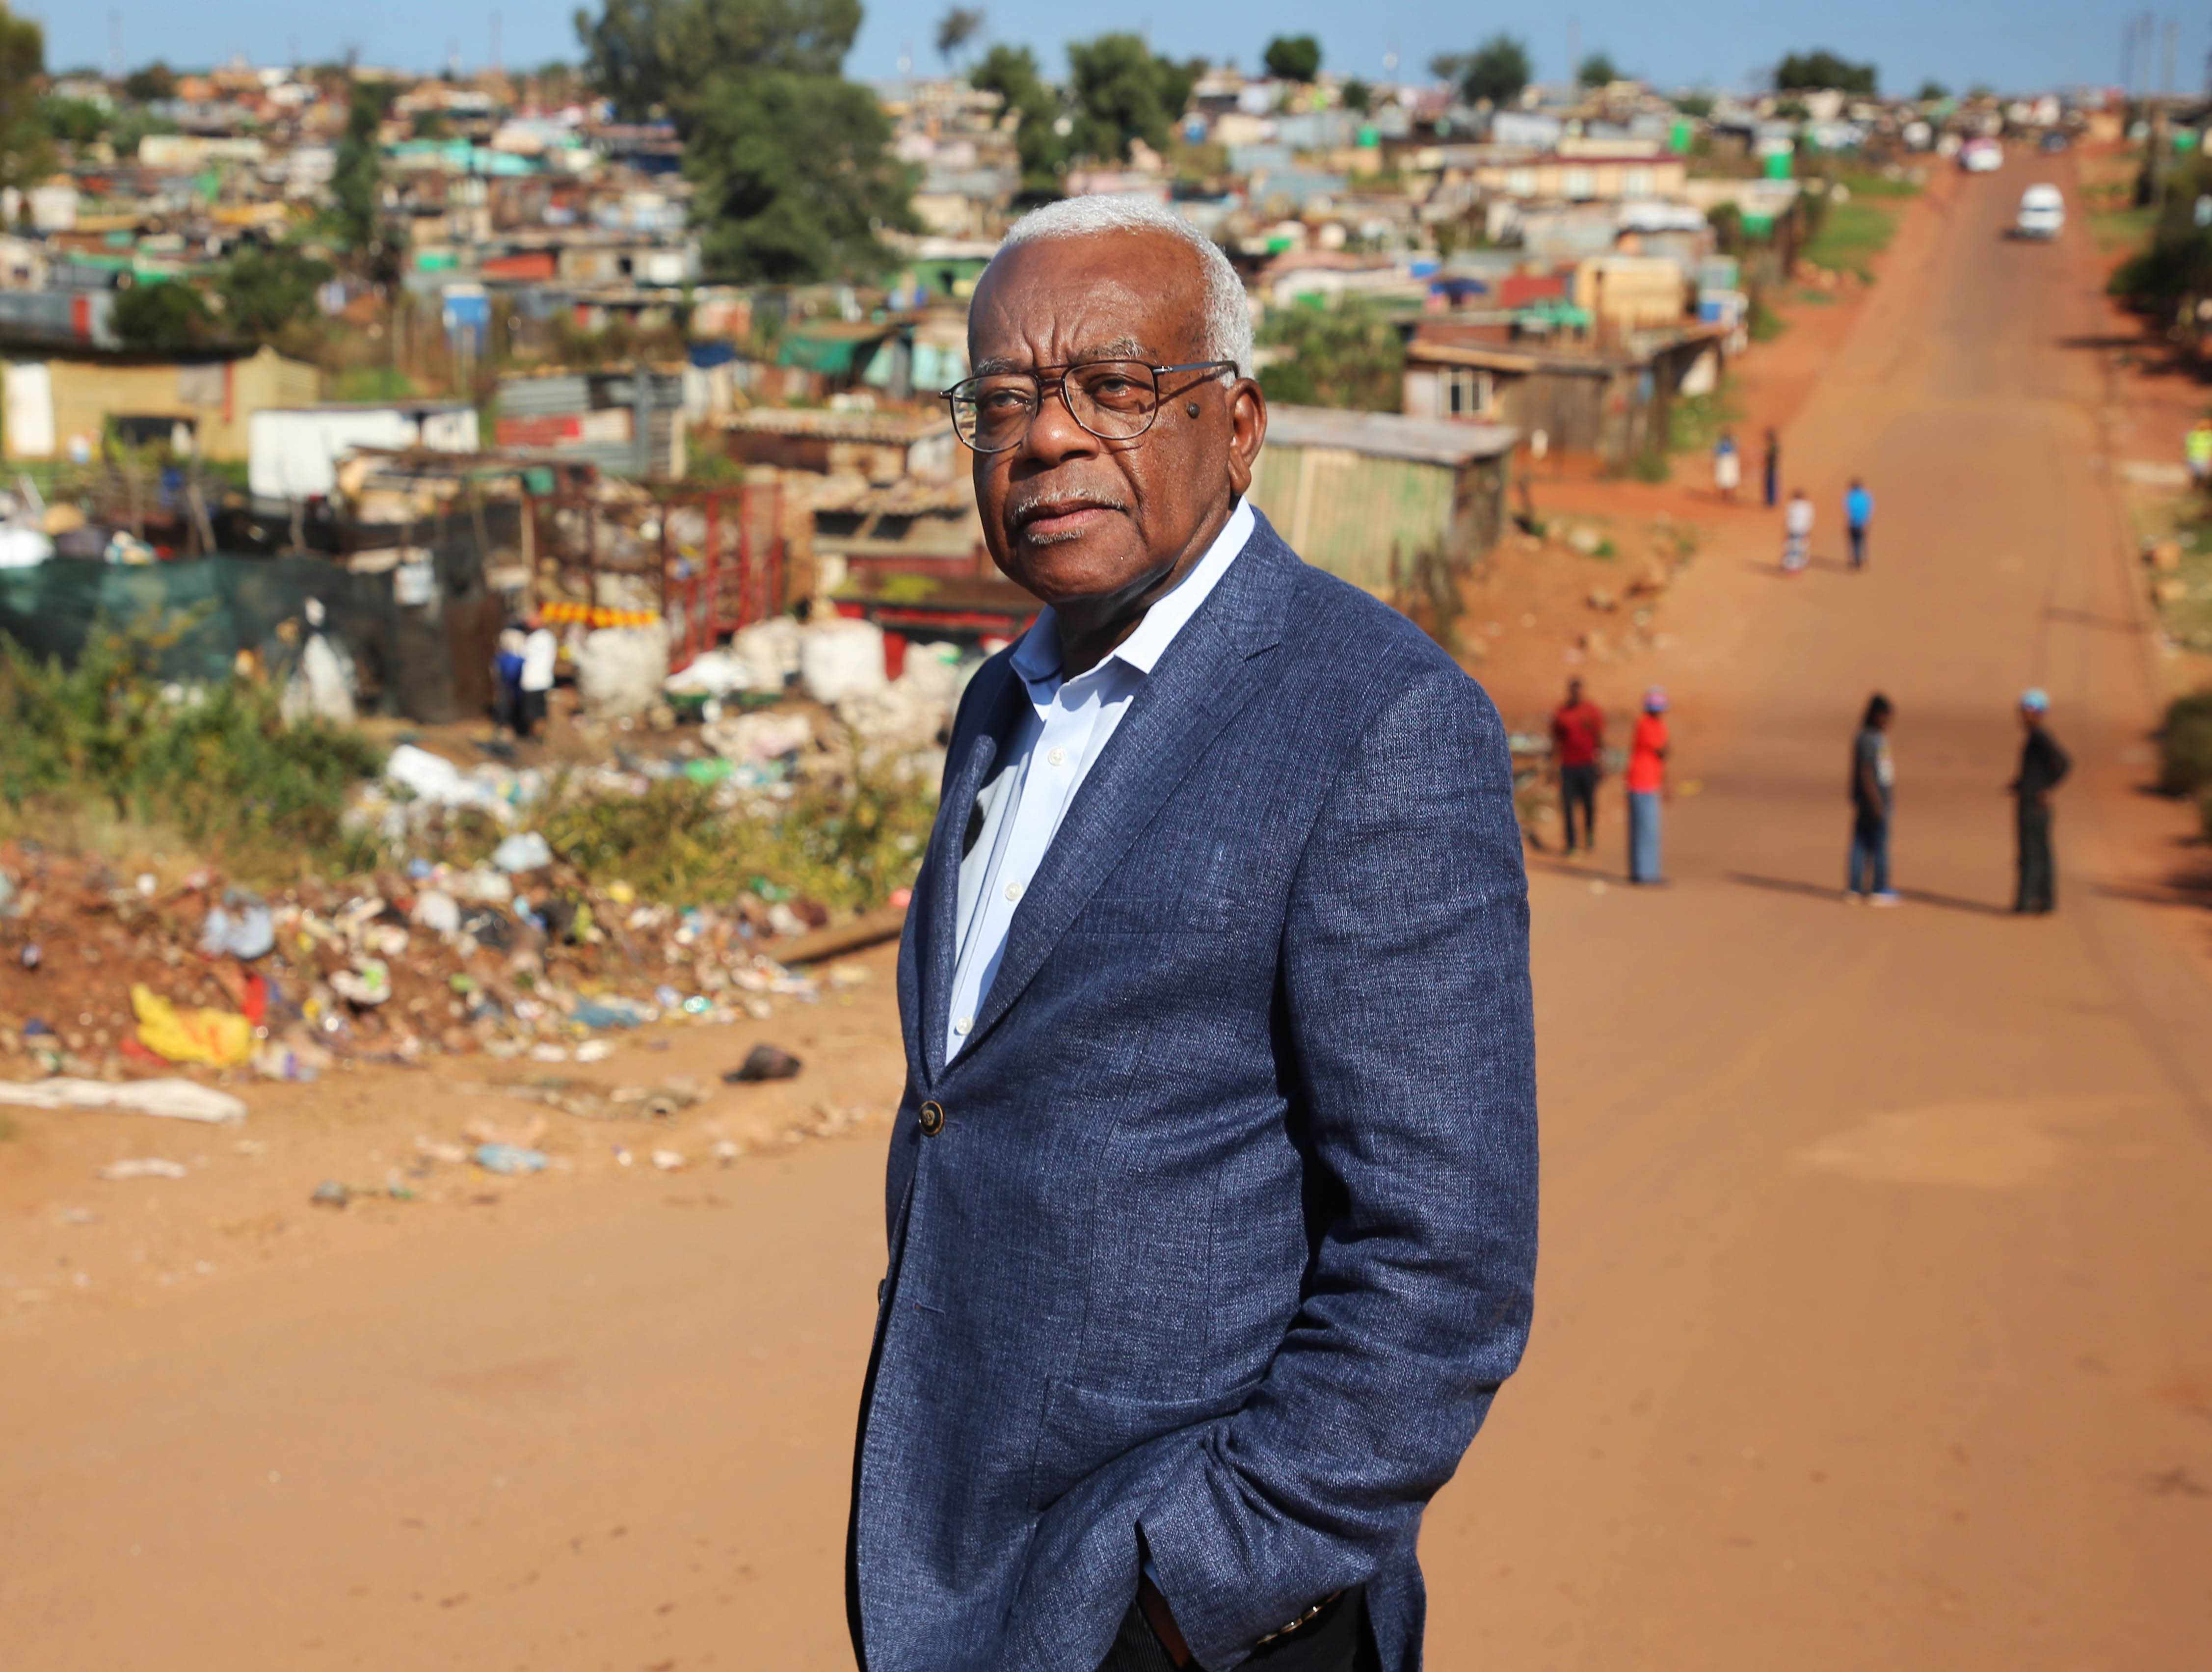 From Shiver Productions    TREVOR McDONALD: RETURN TO SOUTH AFRICA Thursday 19th June 2018 on ITV   Pictured: Trevor McDonald visits Kliptown one of the oldest residential district of Soweto, South Africa    To mark what would have been Nelson MandelaÕs one hundredth birthday, Trevor McDonald is back in the country which he first visited as a journalist at the height of Apartheid.   McDonald was the first journalist to interview Mandela after his release from prison Ð and witnessed history in the making. Since then South Africa has become a nation changed beyond all recognition.   But is it still a land of division, inequality and violent crime Ð or has it turned into the Rainbow Nation Mandela hoped it would become?  For further information please contact Peter Gray 0207 157 3046 peter.gray@itv.com    This photograph is © ITV and can only be reproduced for editorial purposes directly in connection with the  programme TREVOR McDONALD: RETURN TO SOUTH AFRICA or ITV. Once made available by the ITV Picture Desk, this photograph can be reproduced once only up until the Transmission date and no reproduction fee will be charged. Any subsequent usage may incur a fee. This photograph must not be syndicated to any other publication or website, or permanently archived, without the express written permission of ITV Picture Desk. Full Terms and conditions are available on the website www.itvpictures.com